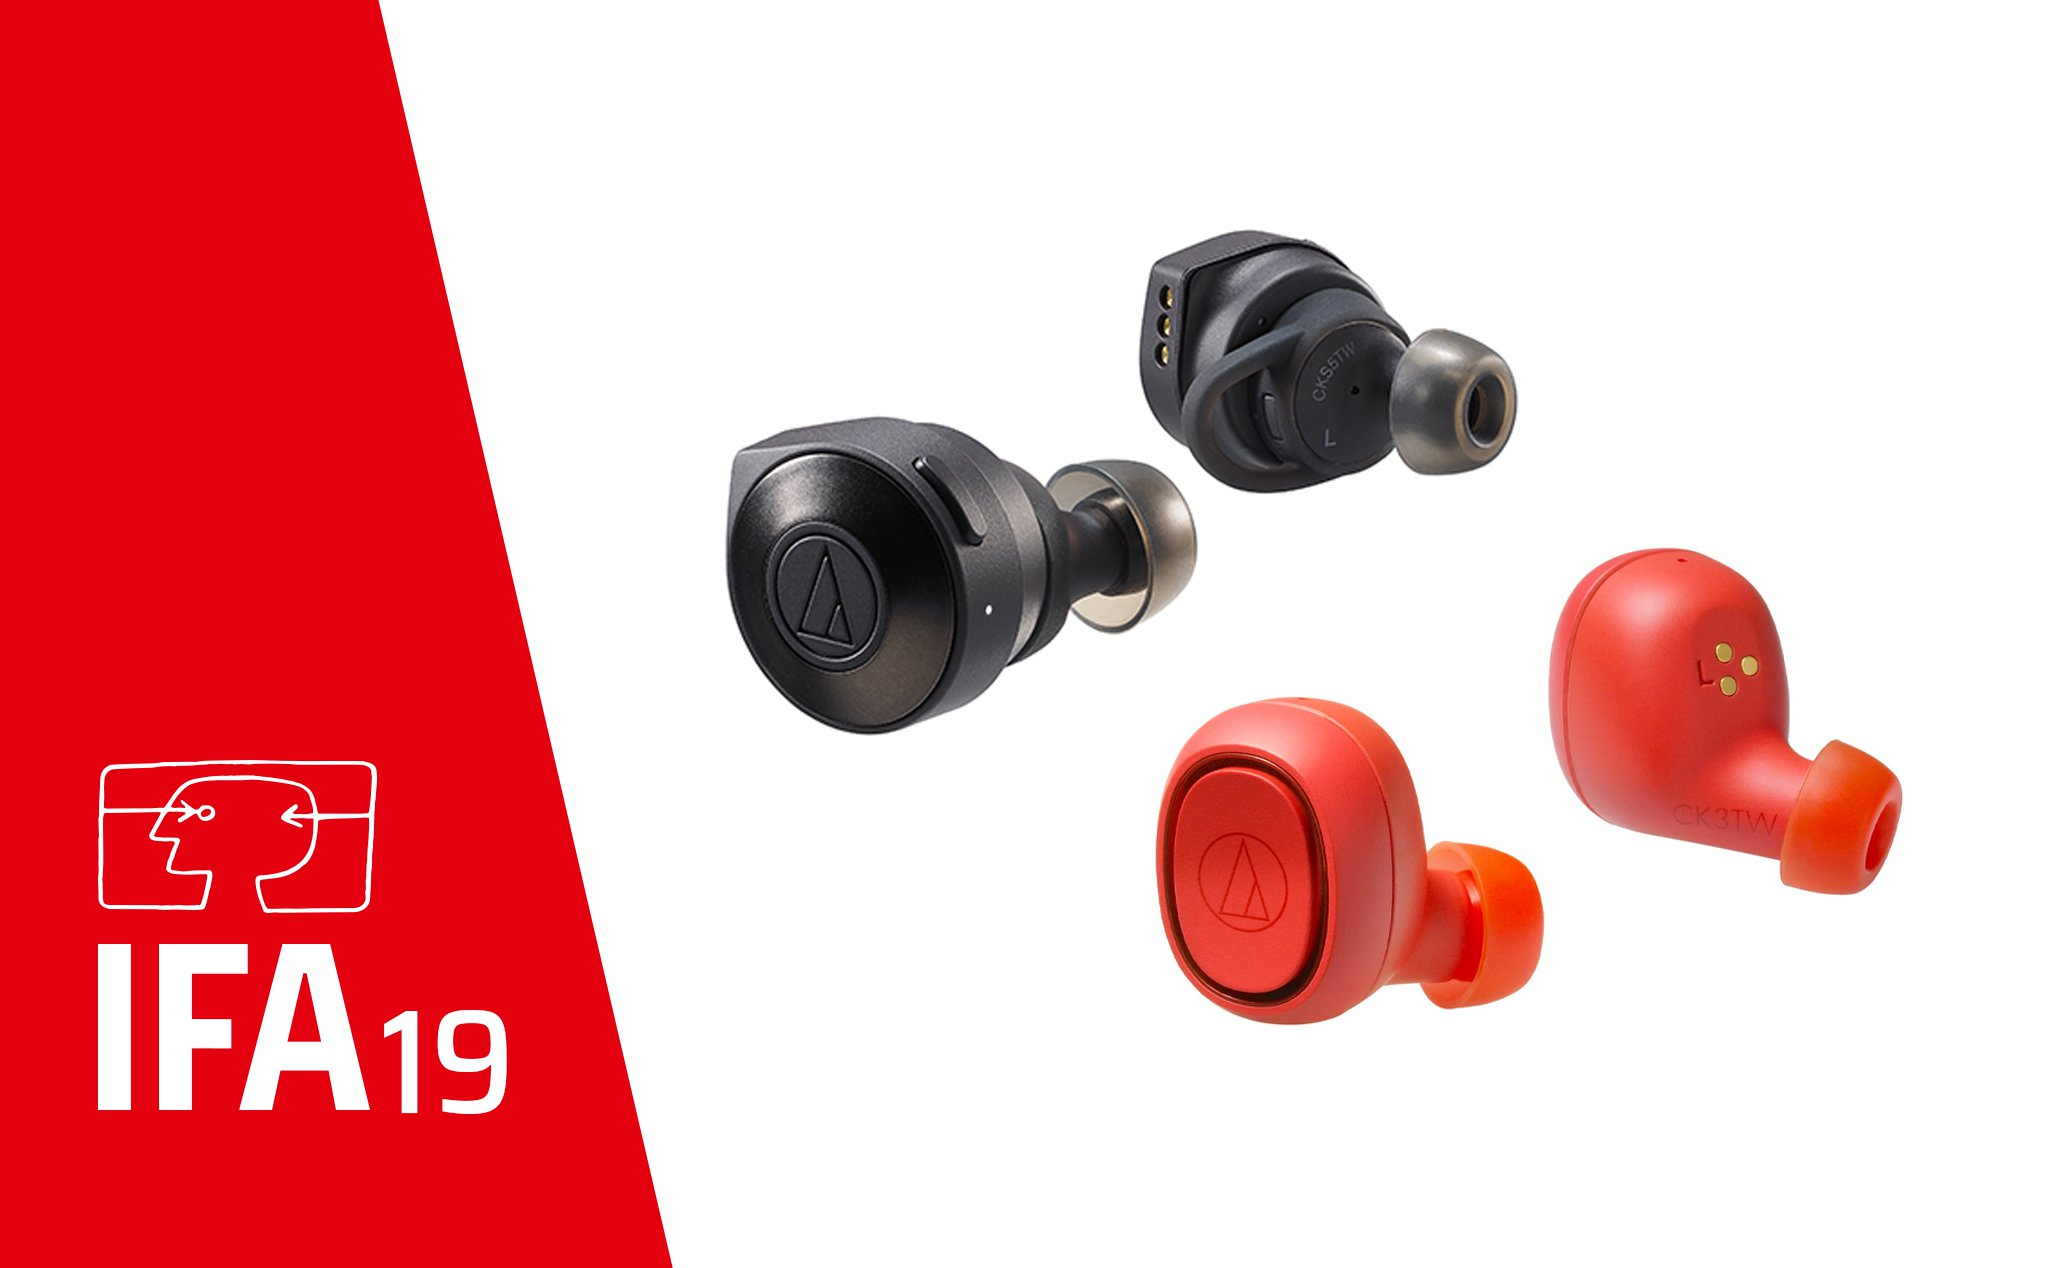 IFA2019: Audio-Technica introduces the cheap True Wireless duo ATH-CKS5TW and ATH-CKS3TW.